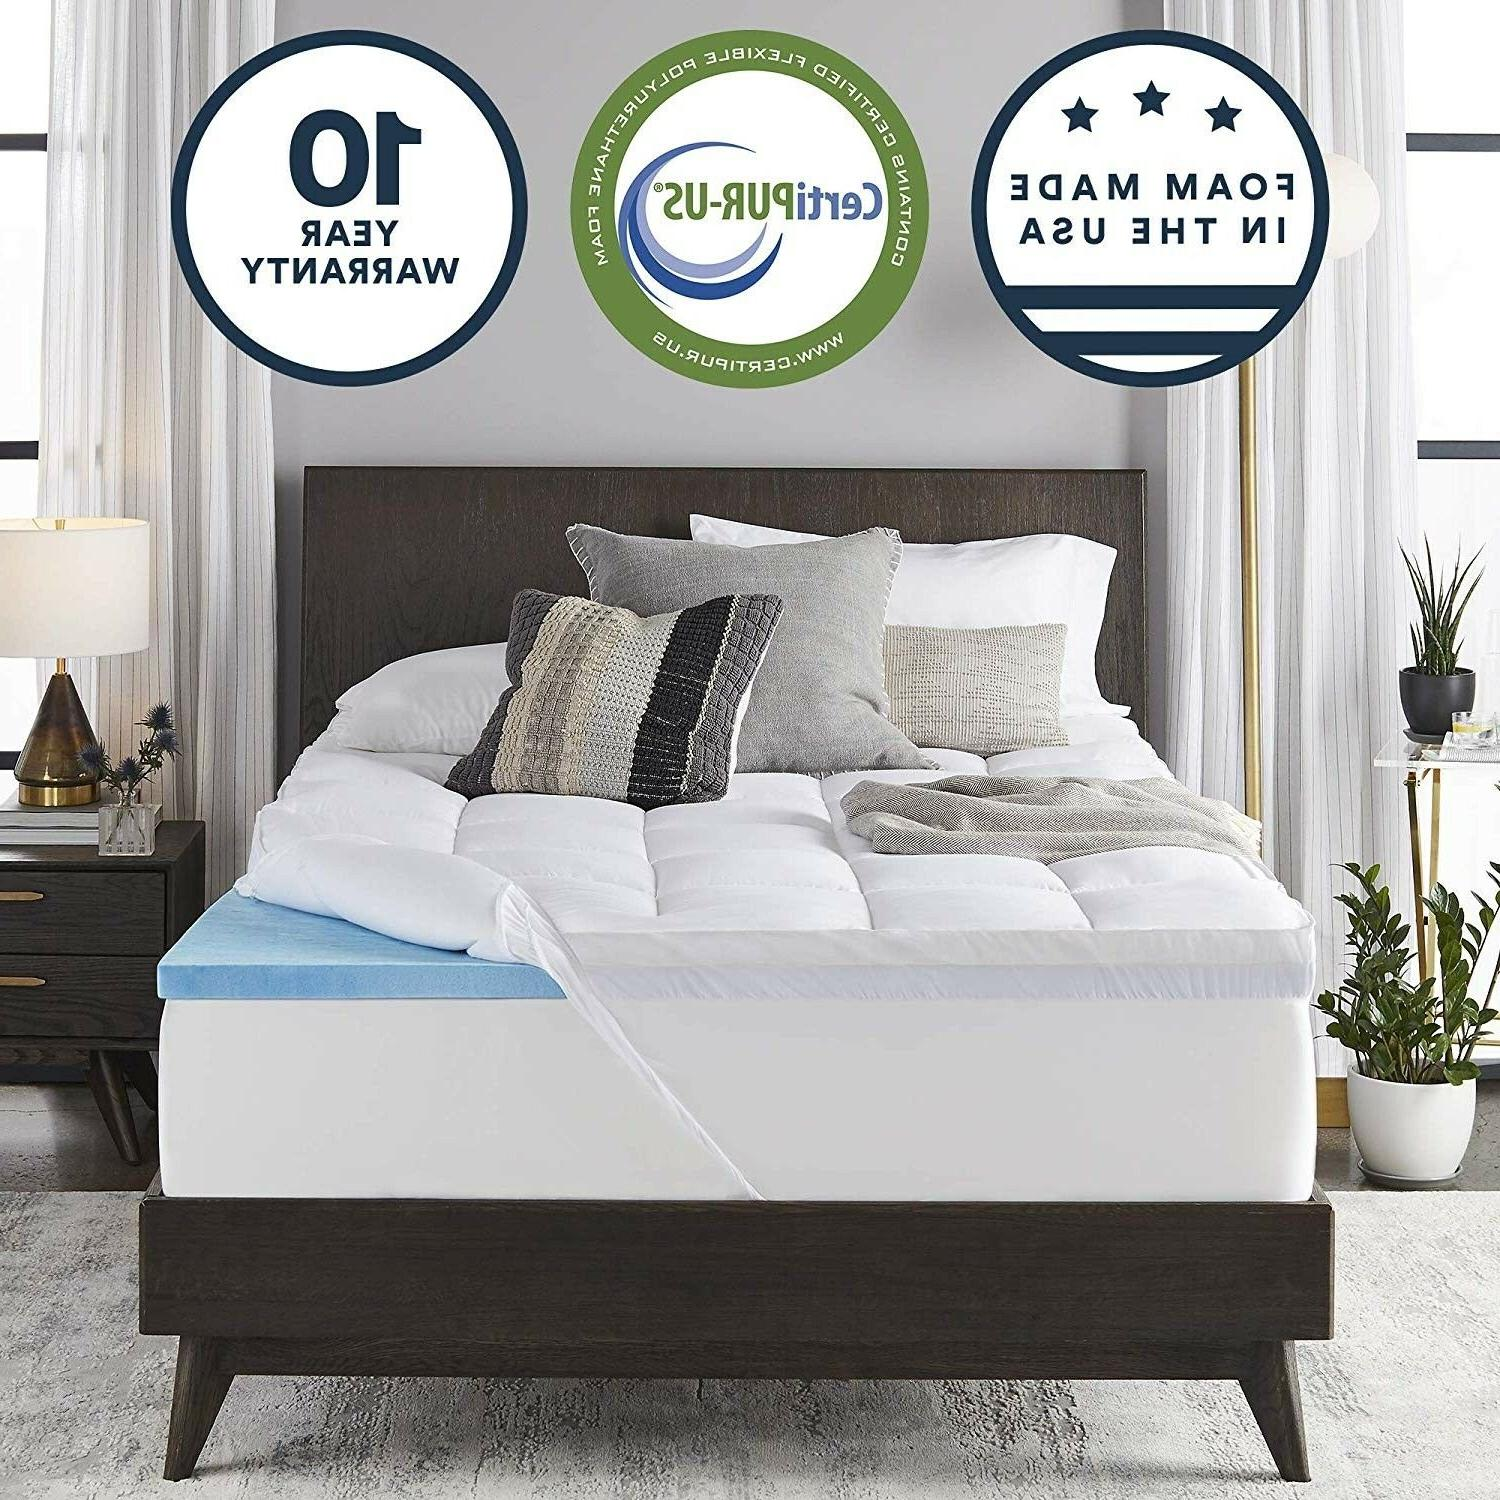 sleep innovations 2 5 inch gel memory foam mattress topper with 100 cotton cover made in the usa with a 10 year warranty california king size innocor inc g top 01730 ck wht home kitchen bedding